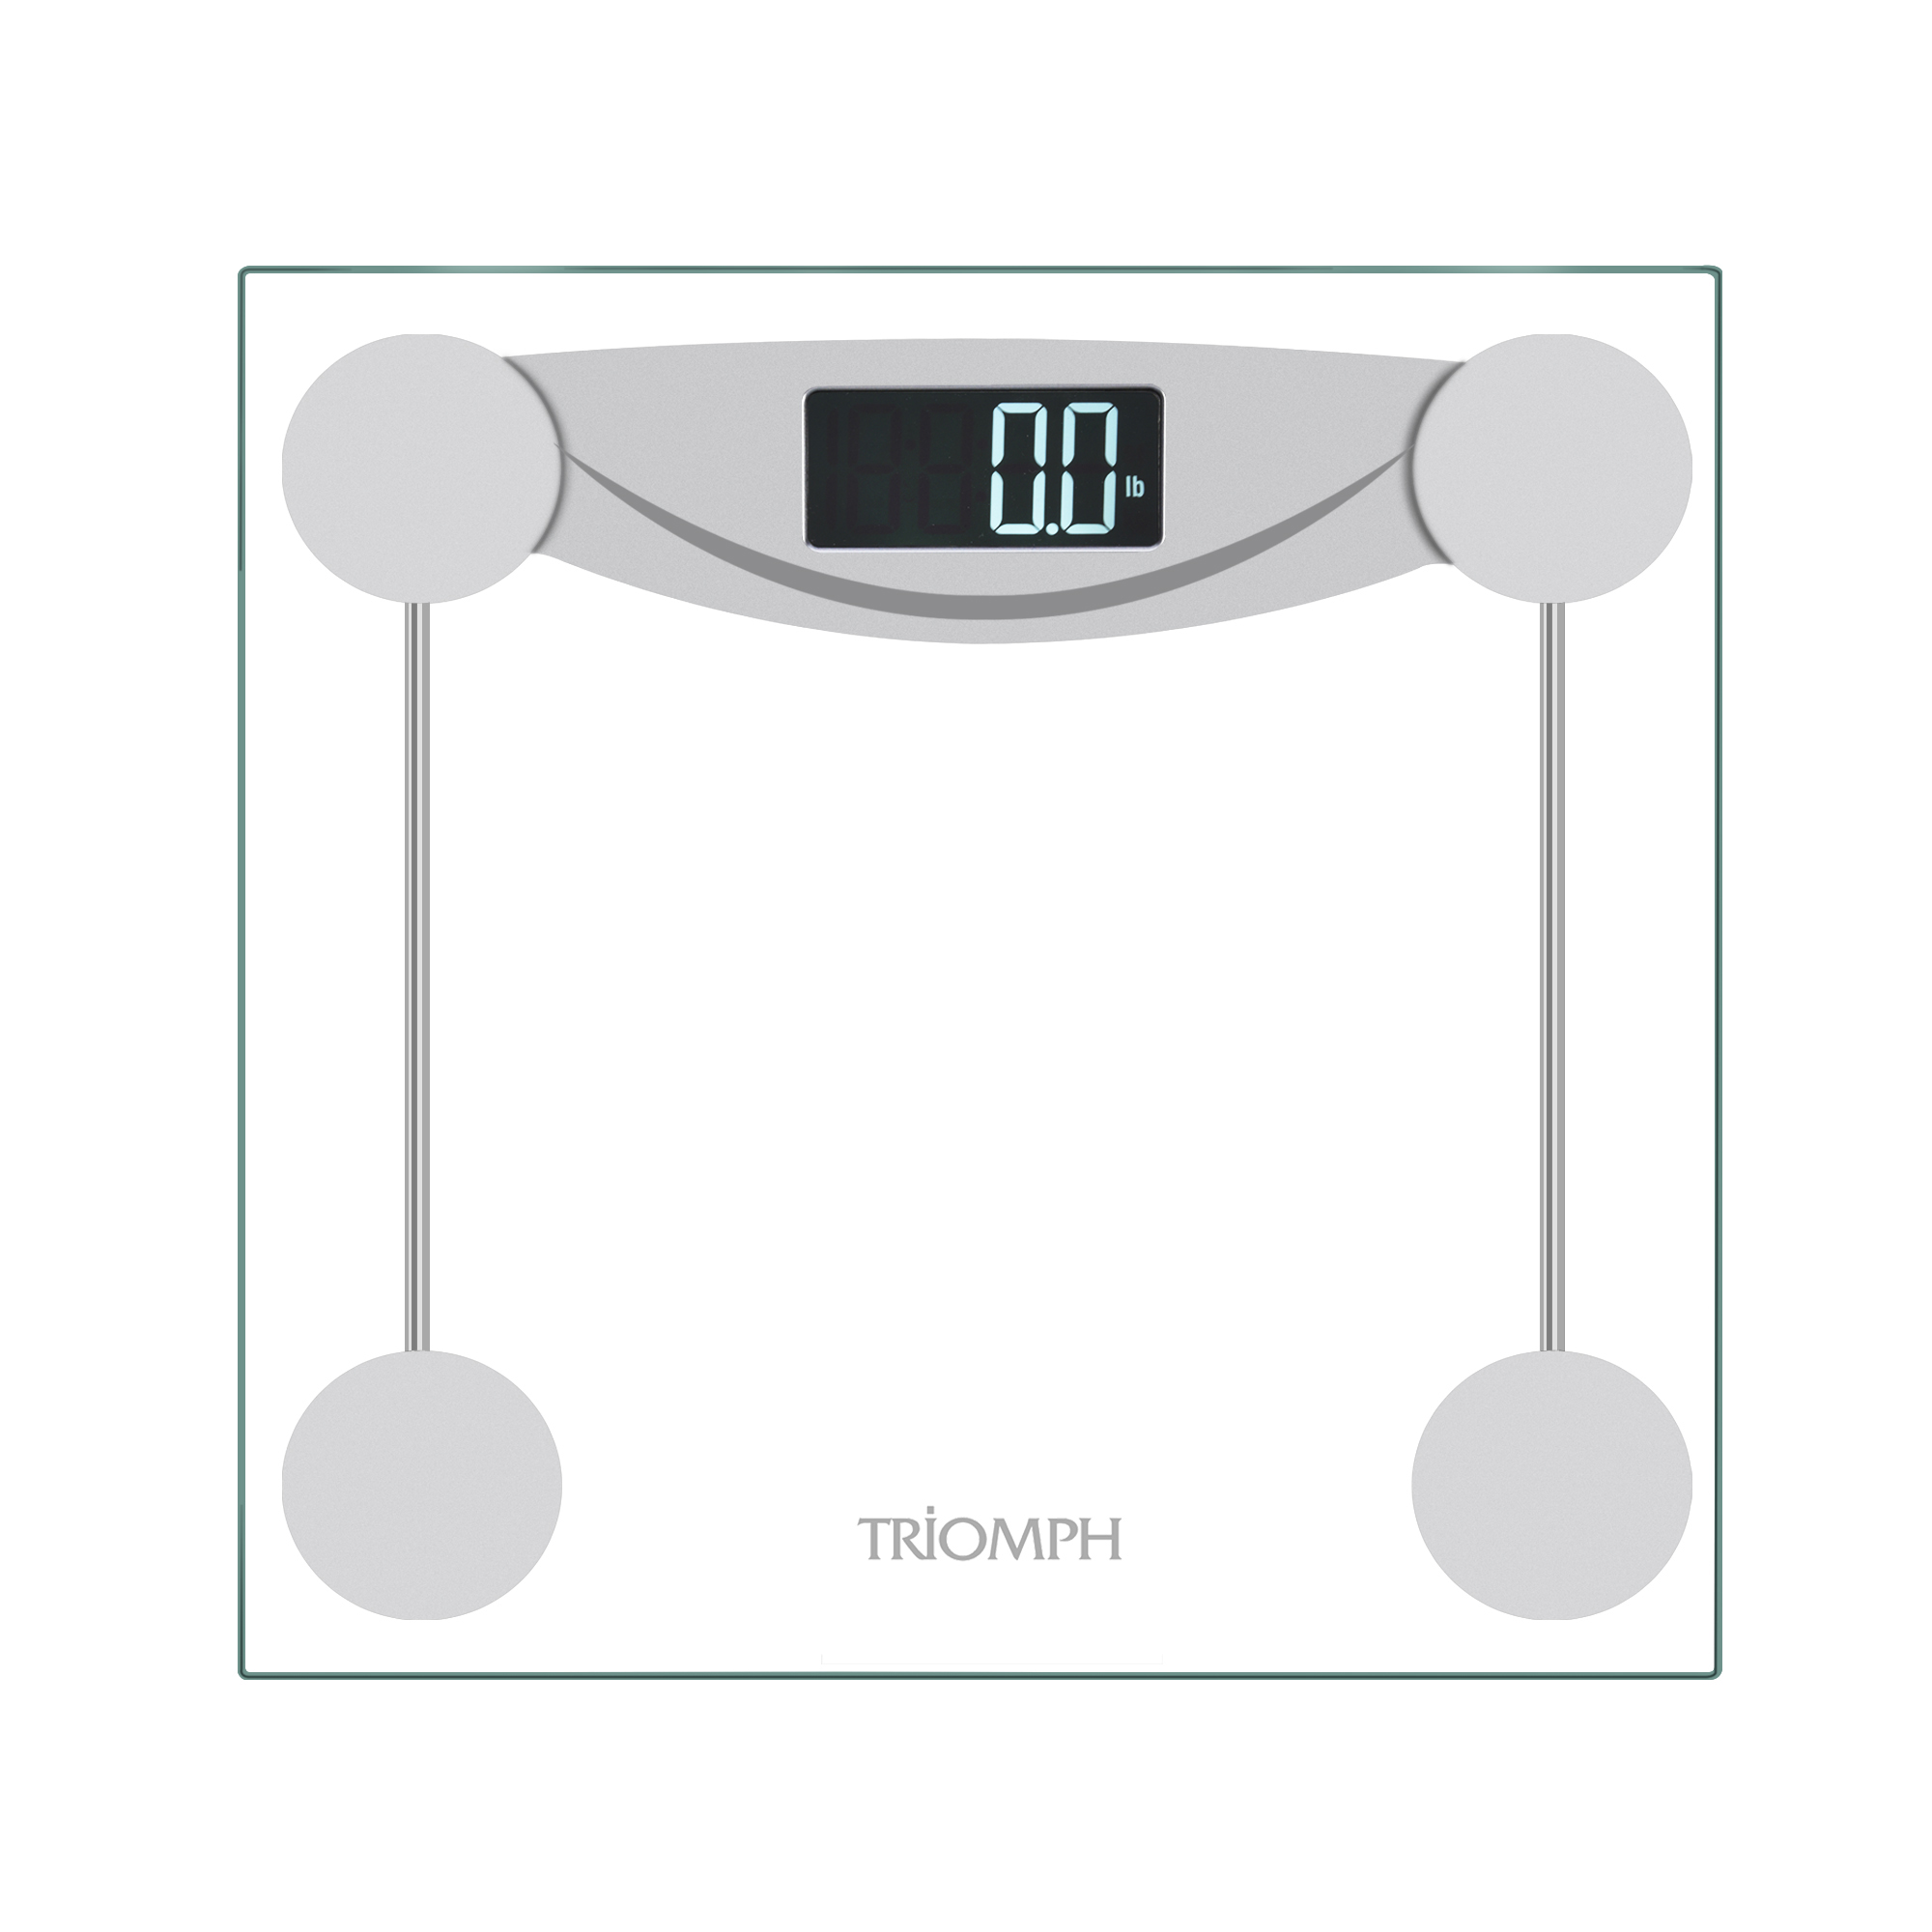 TRSC13 Triomph Body Weight Bathroom Scale